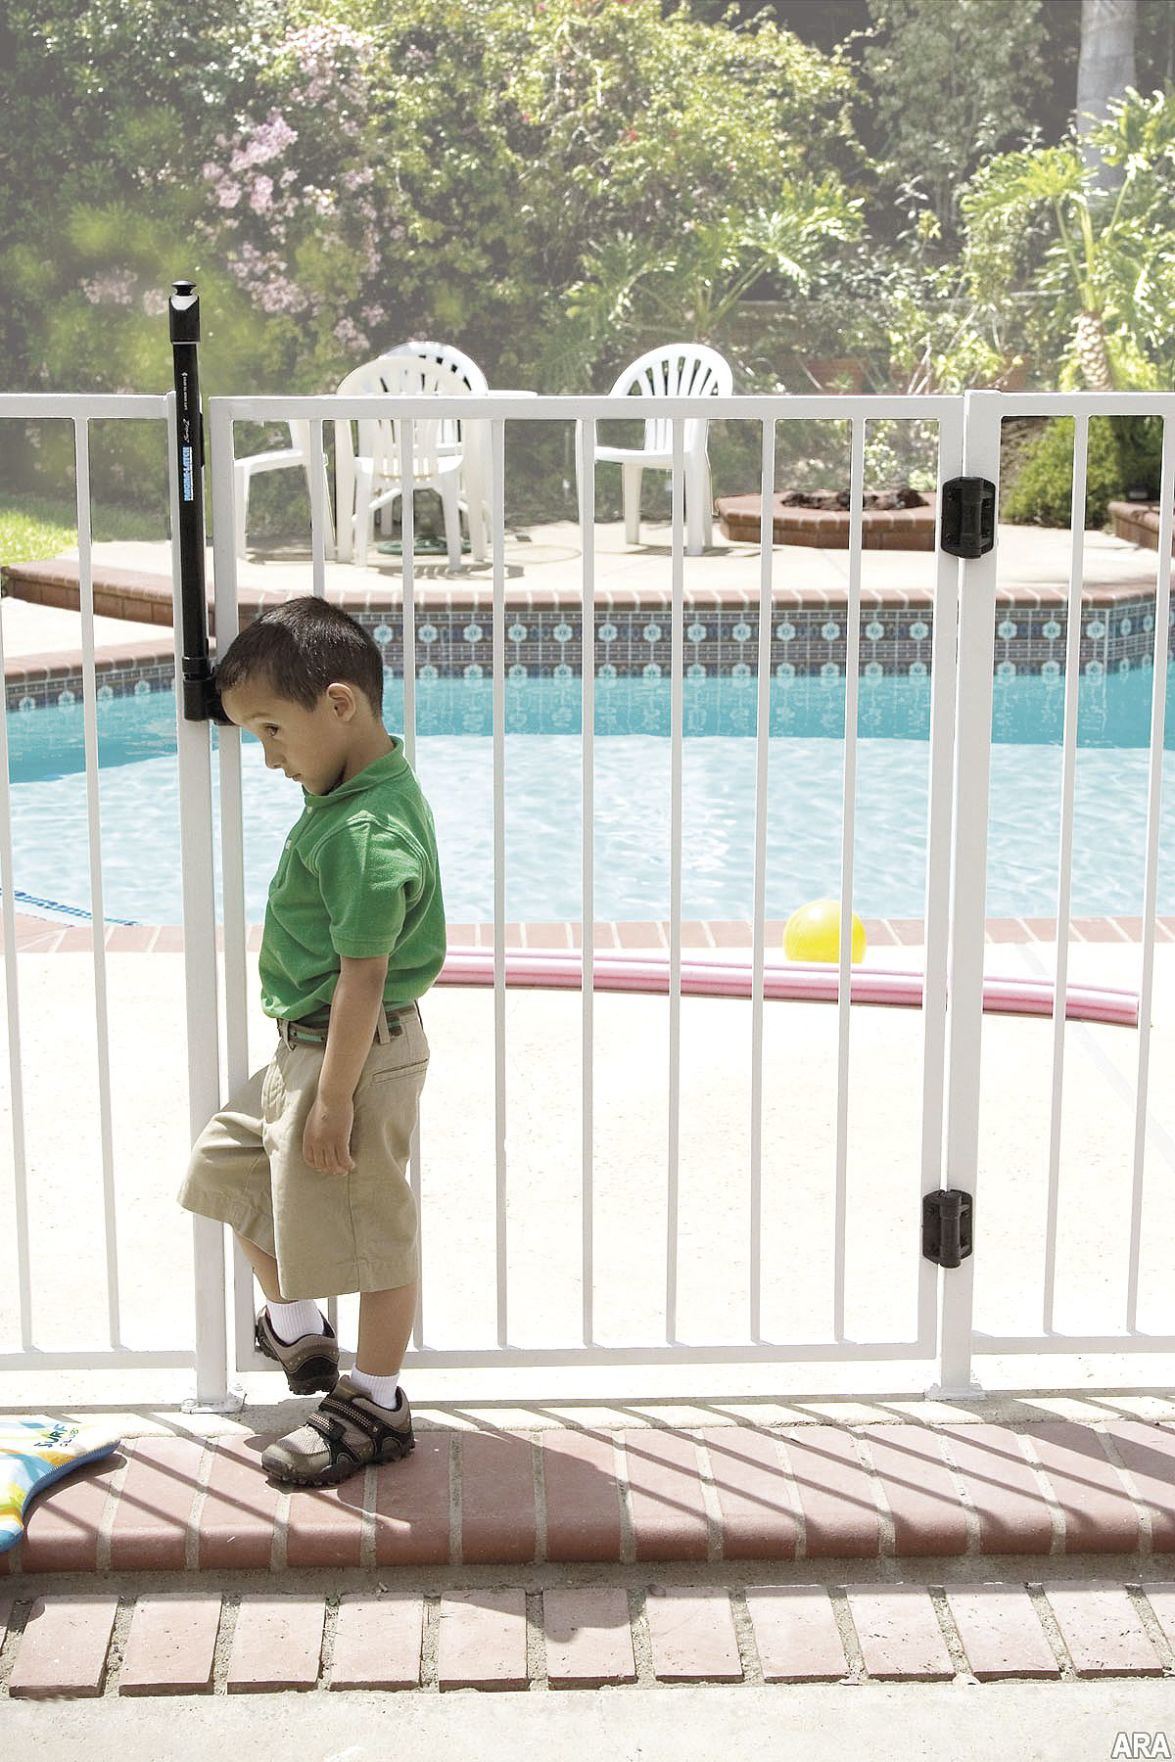 State union warm weather means pool safety is a must